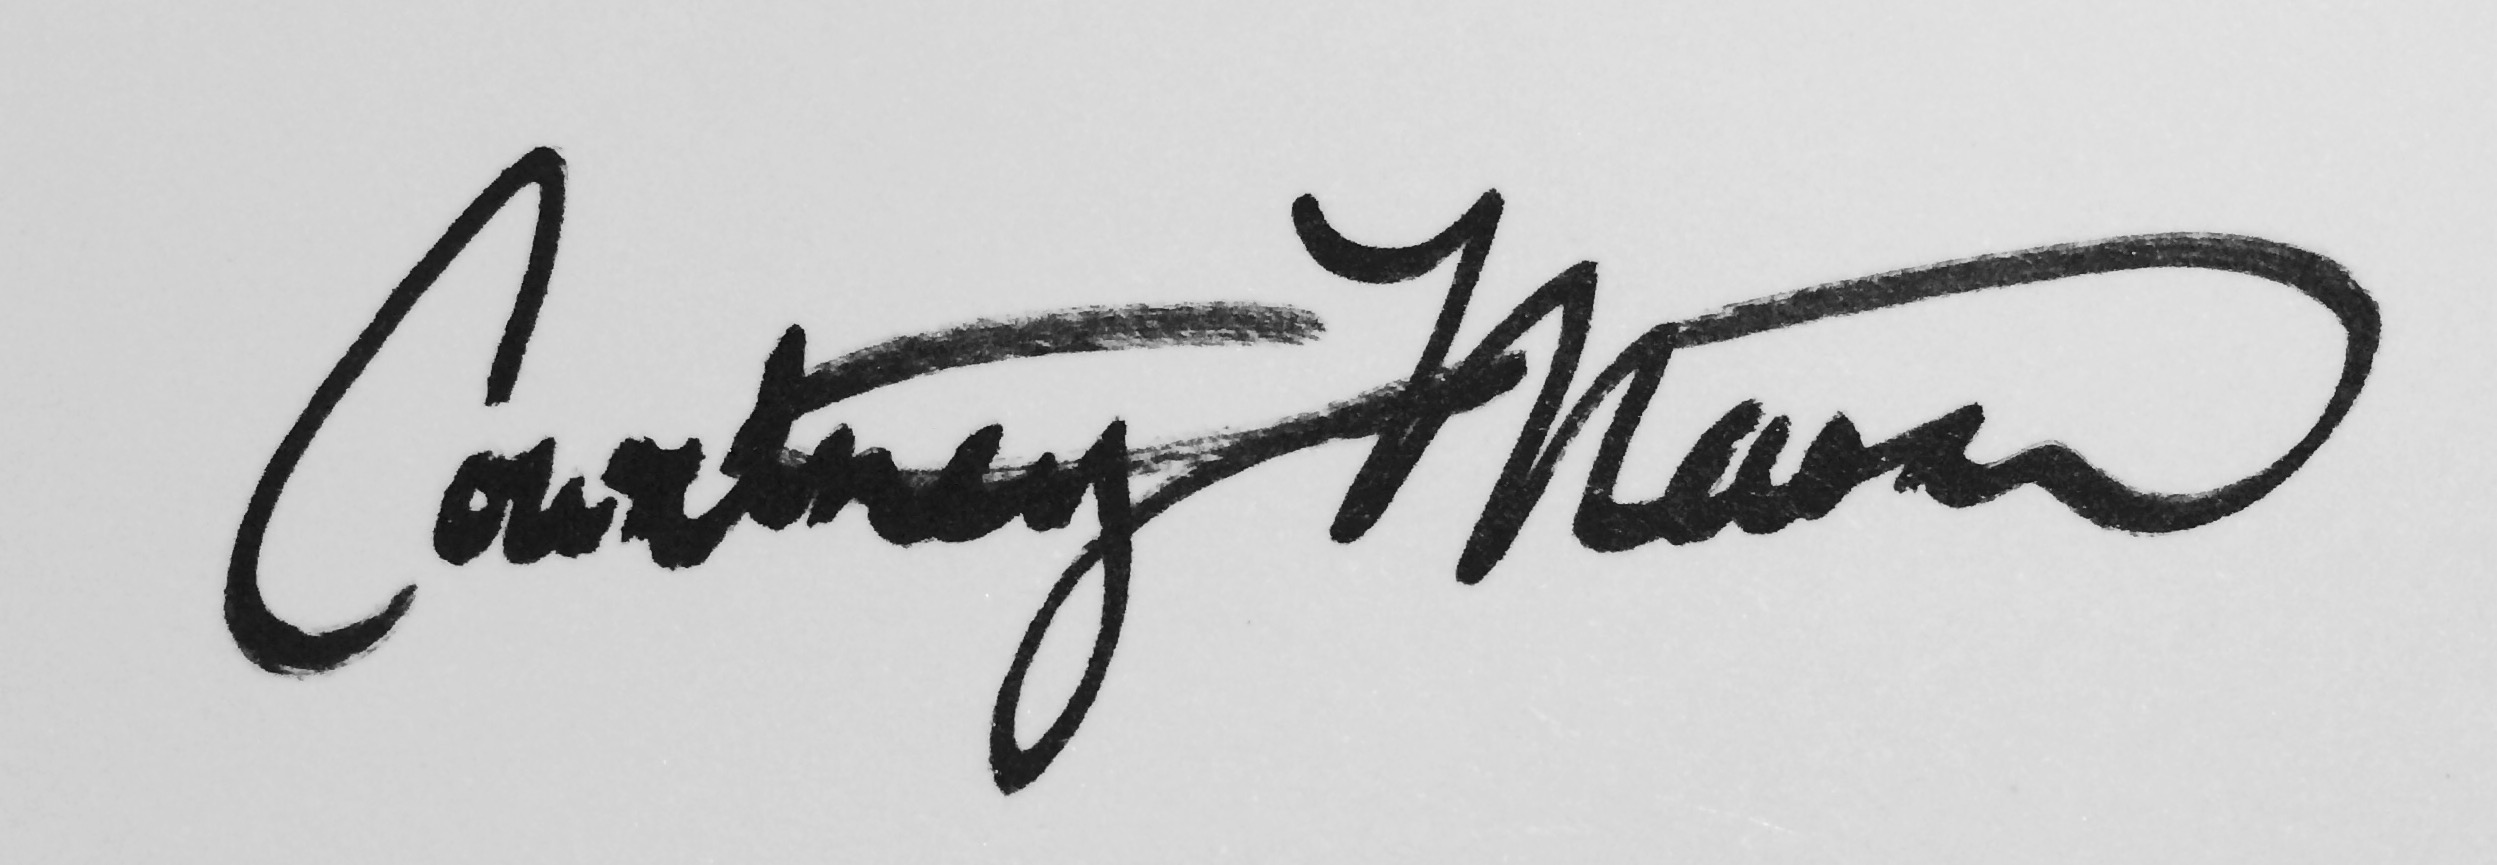 Courtney Mason's Signature